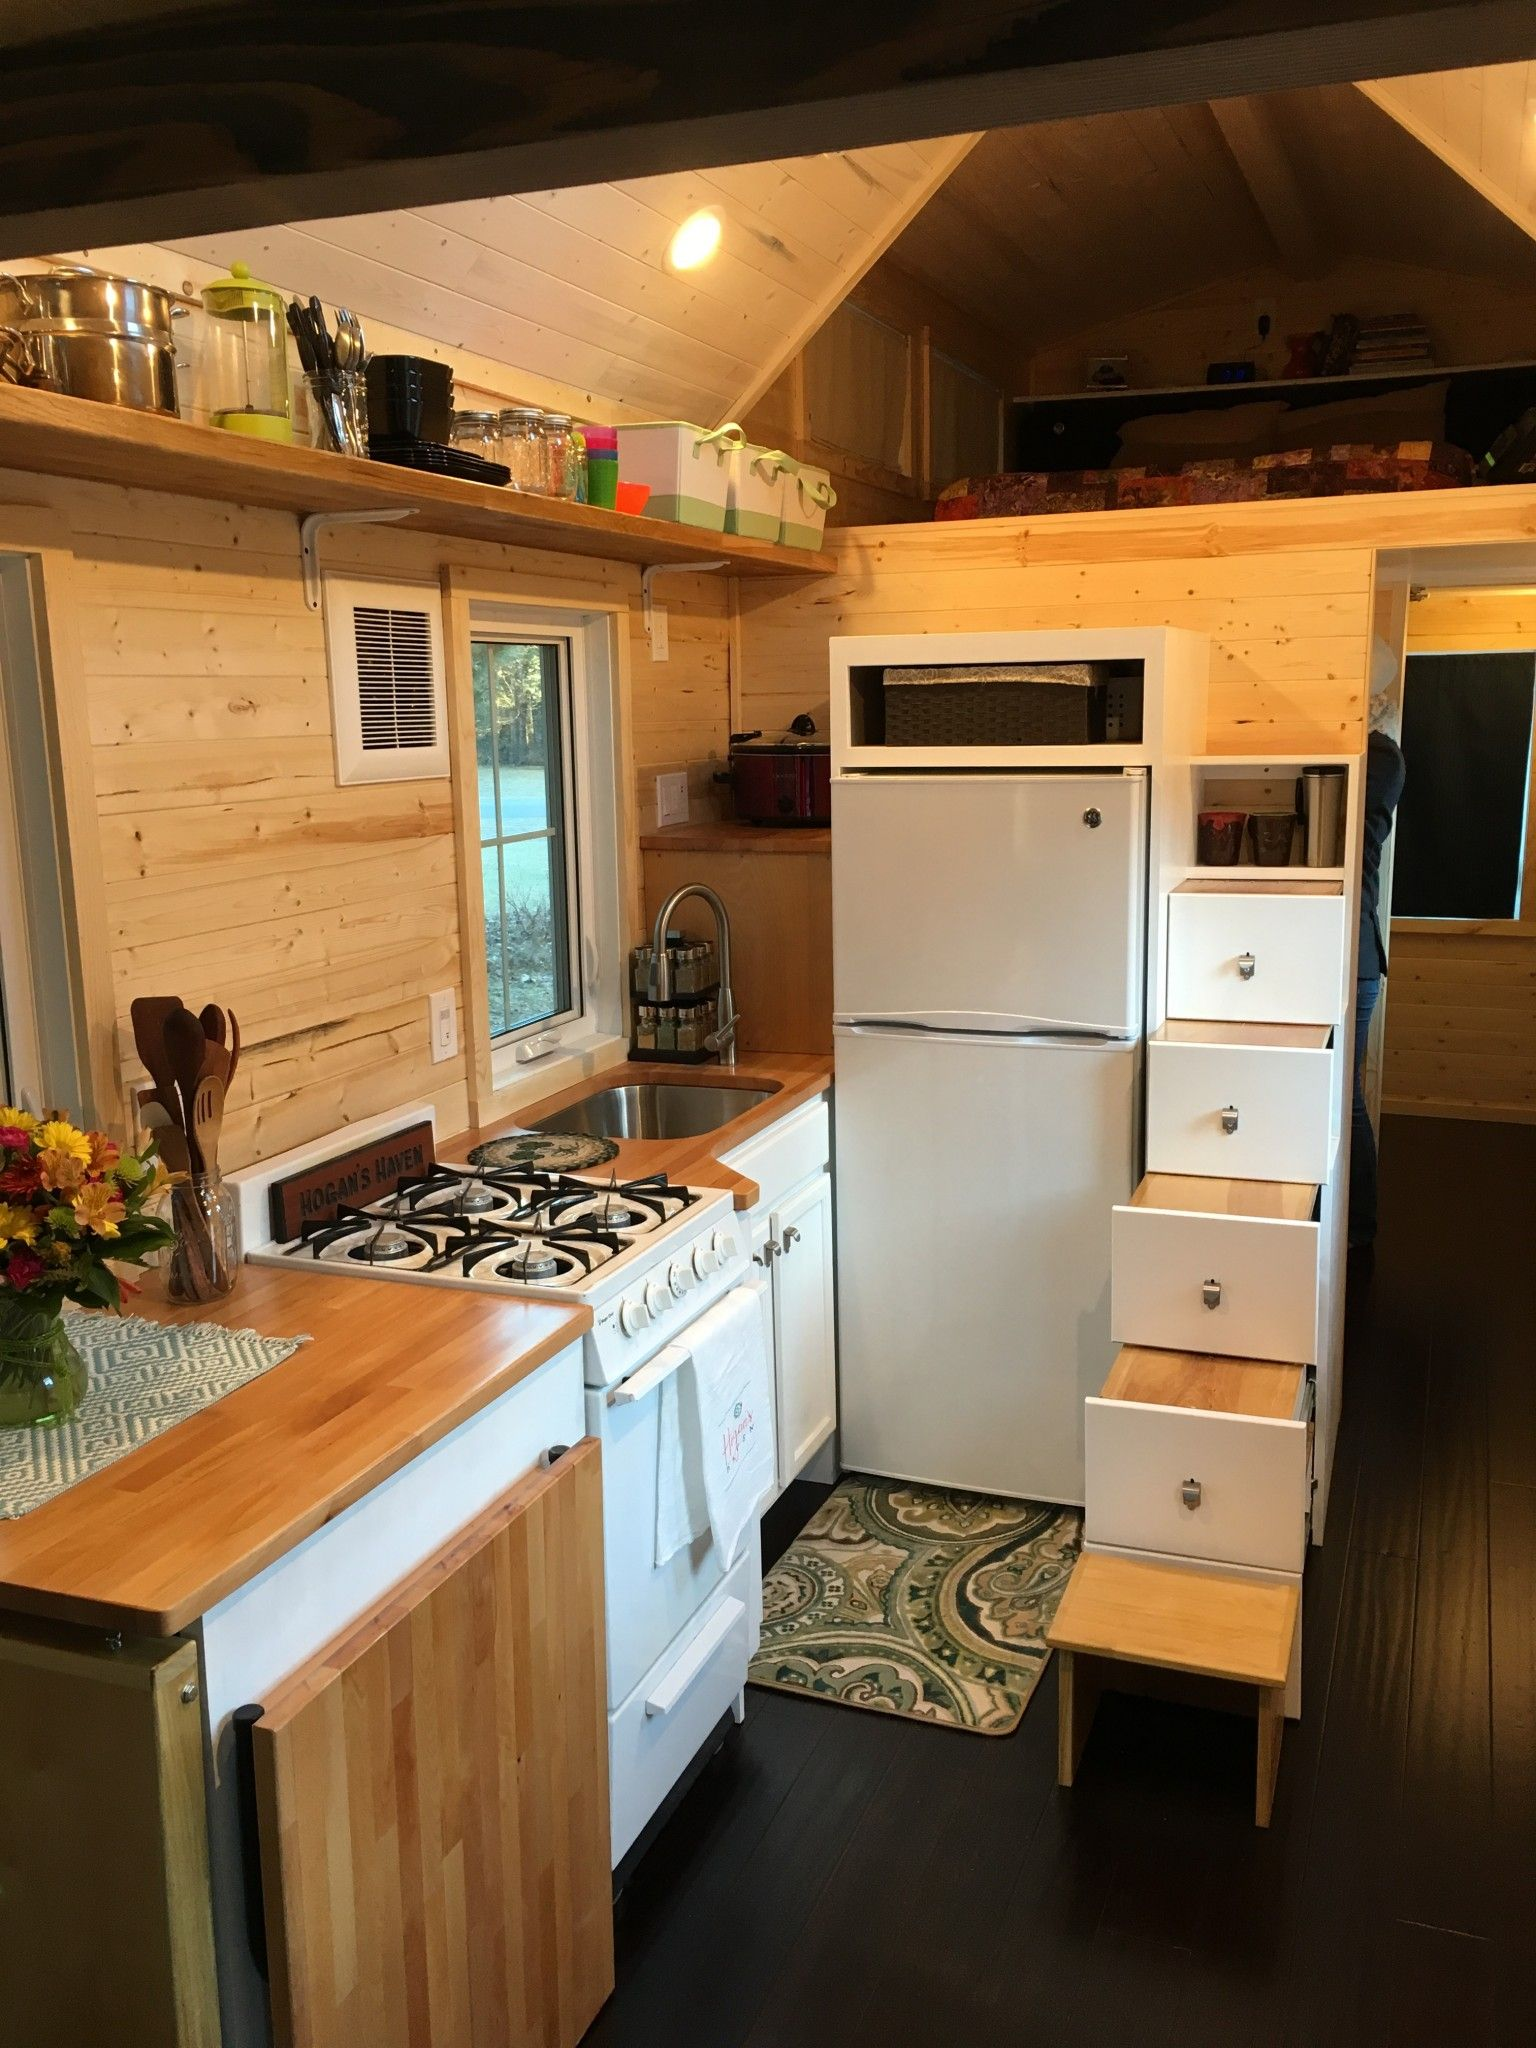 Astonishing Tiny House Completed Kitchen As Seen On Hgtv Tiny House Big Living Largest Home Design Picture Inspirations Pitcheantrous